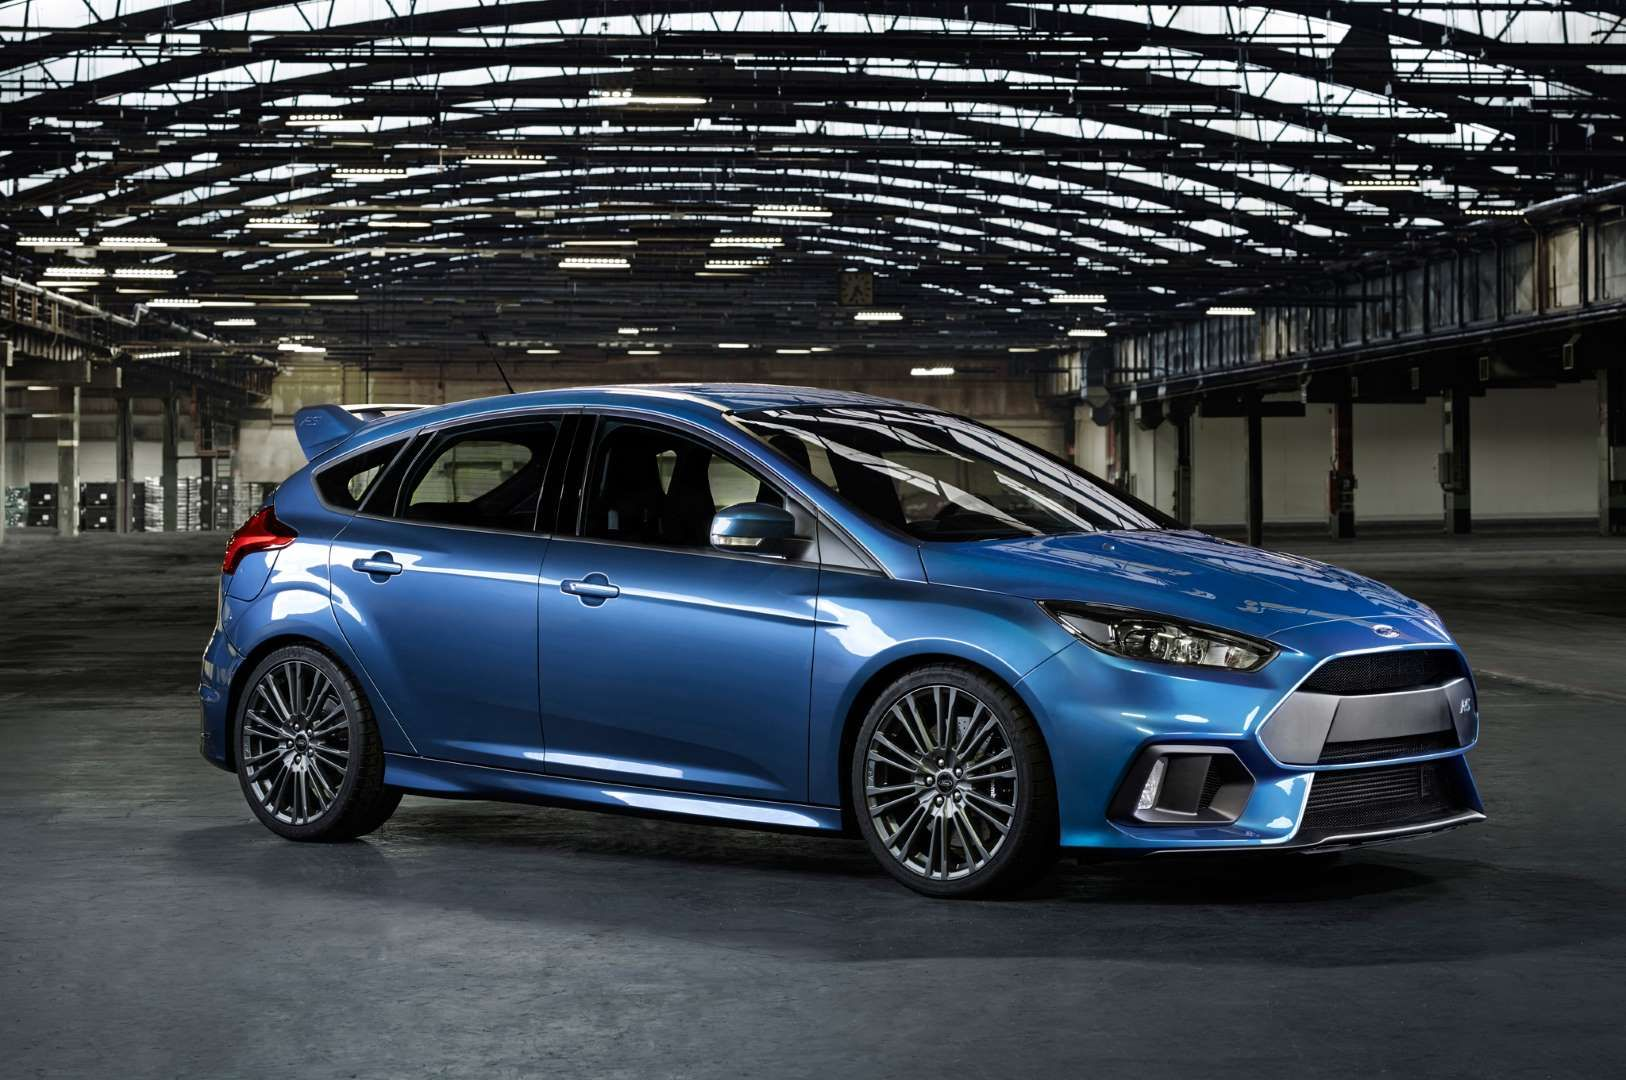 Ford Focus Hatchback With Images Focus Rs New Ford Focus